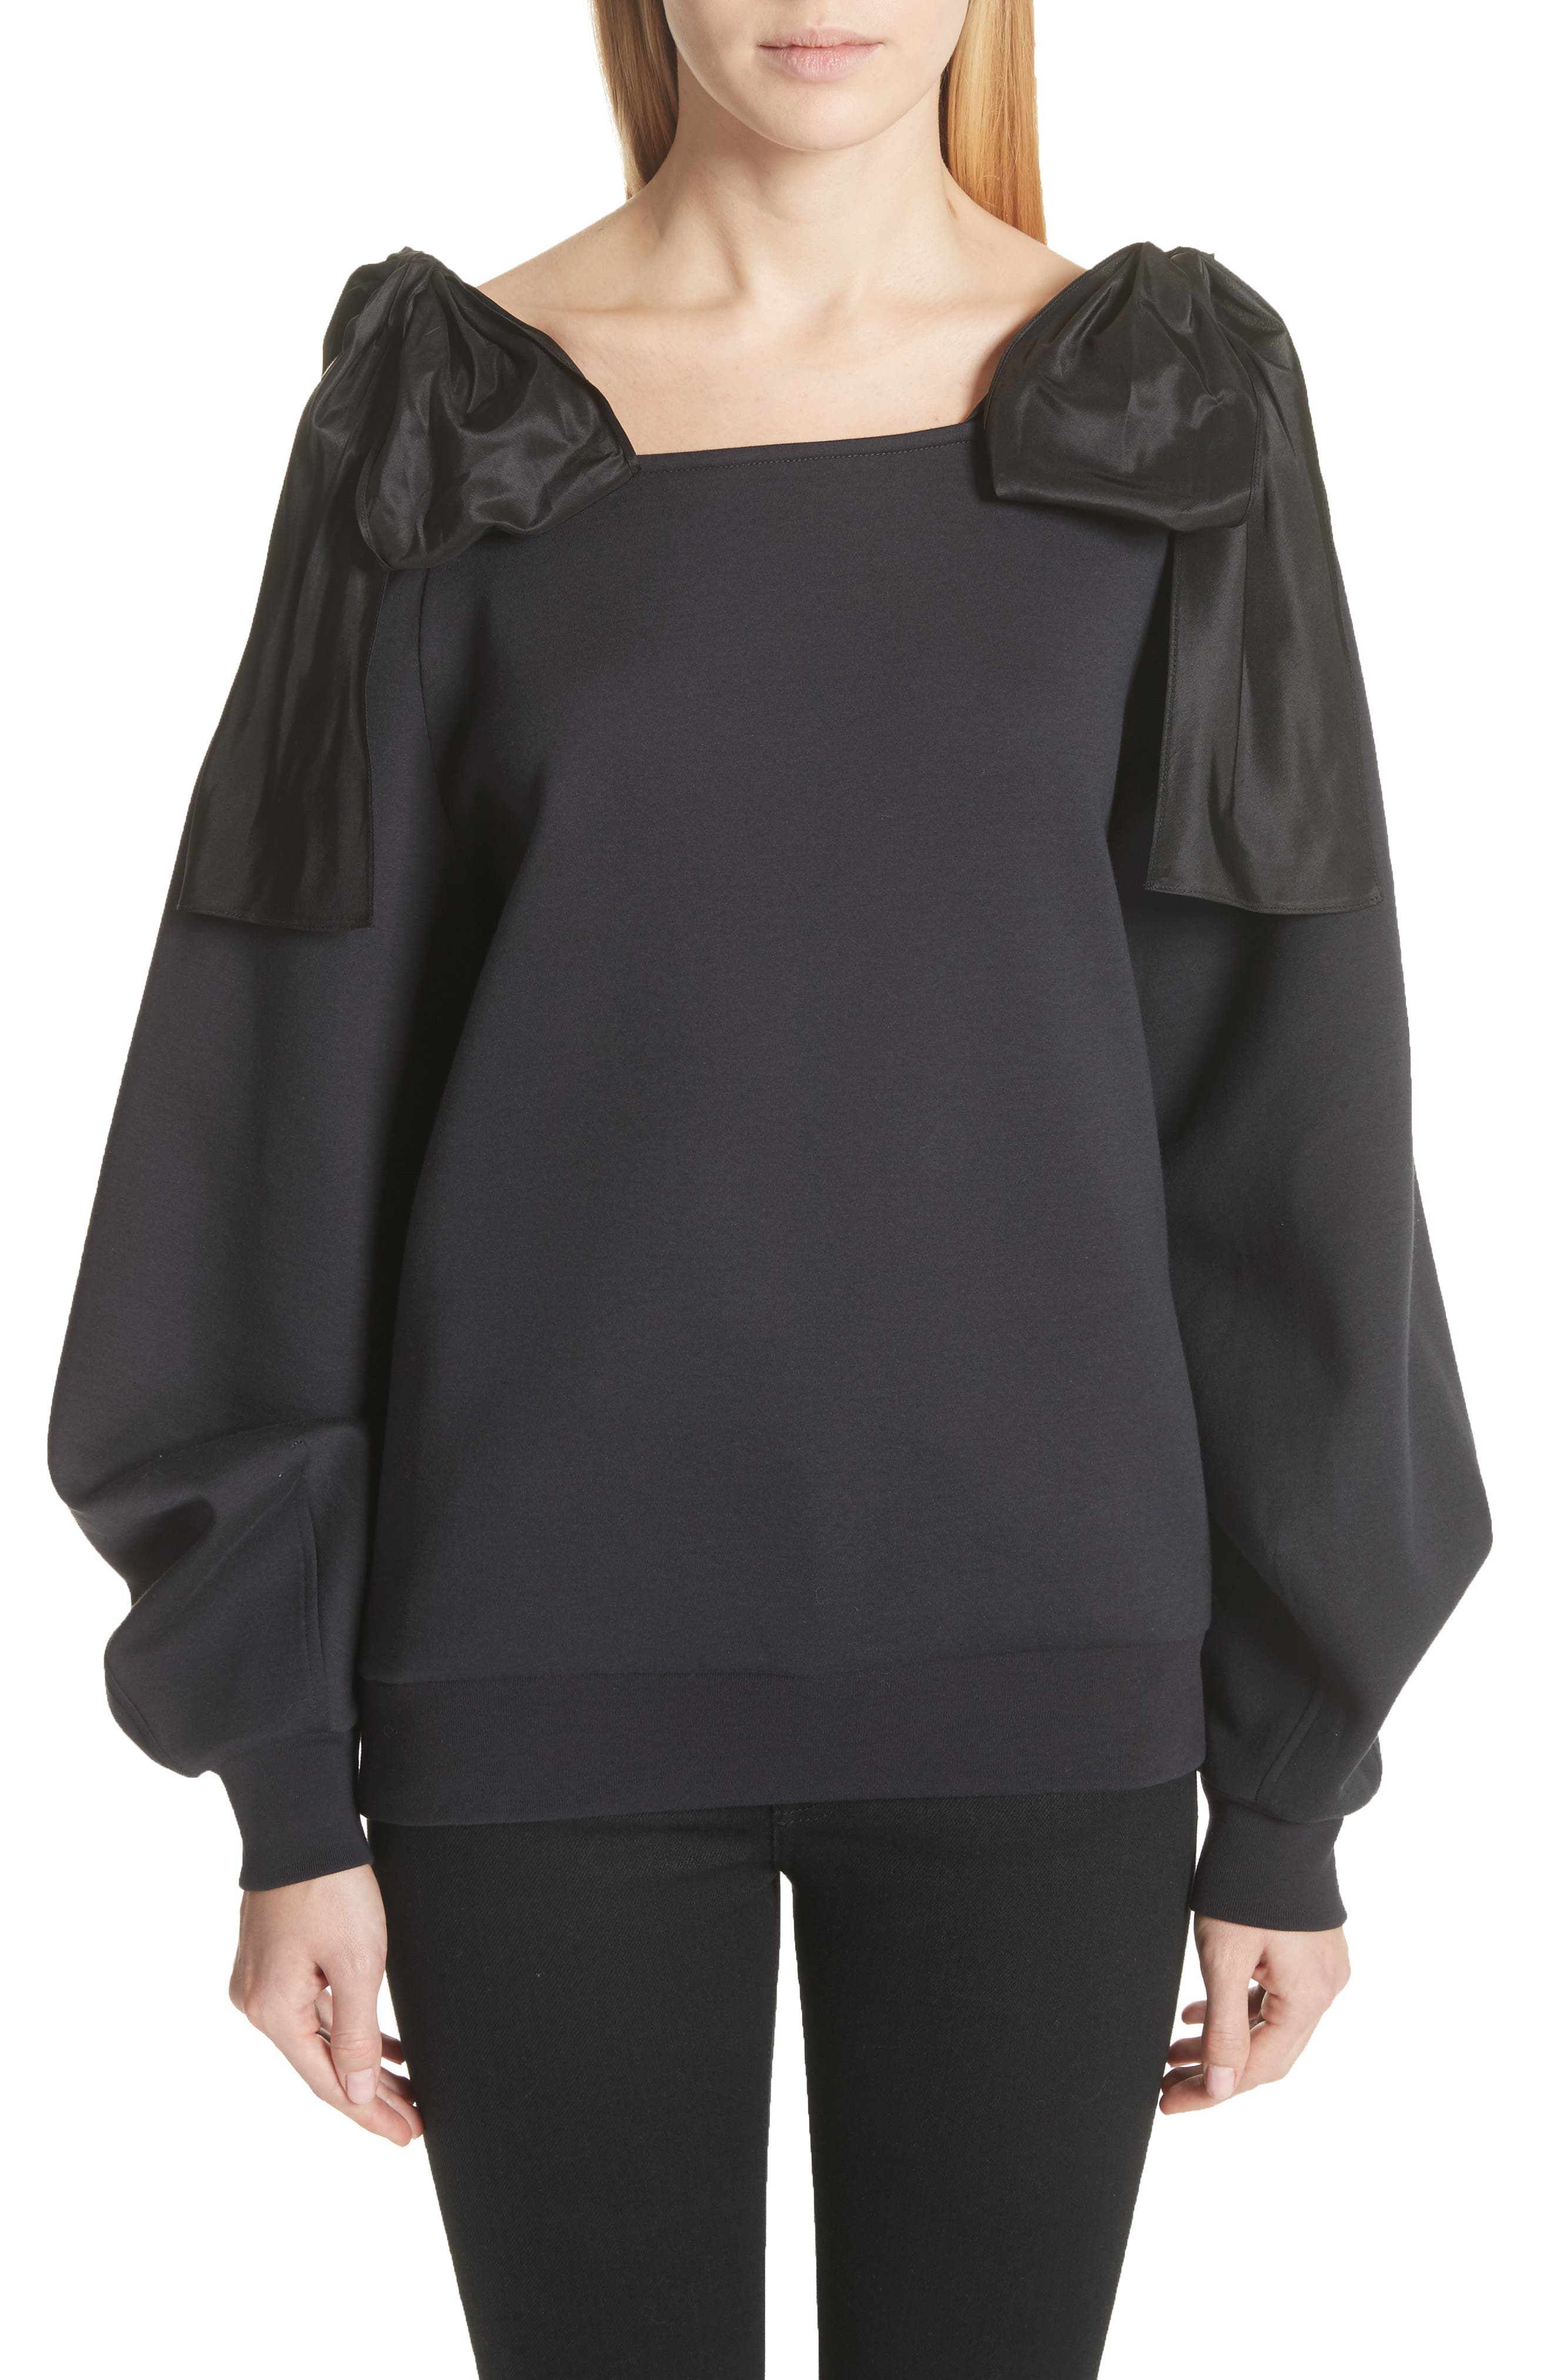 Alternate Image 1 Selected - Stella McCartney Bow Strap Cold Shoulder Sweatshirt